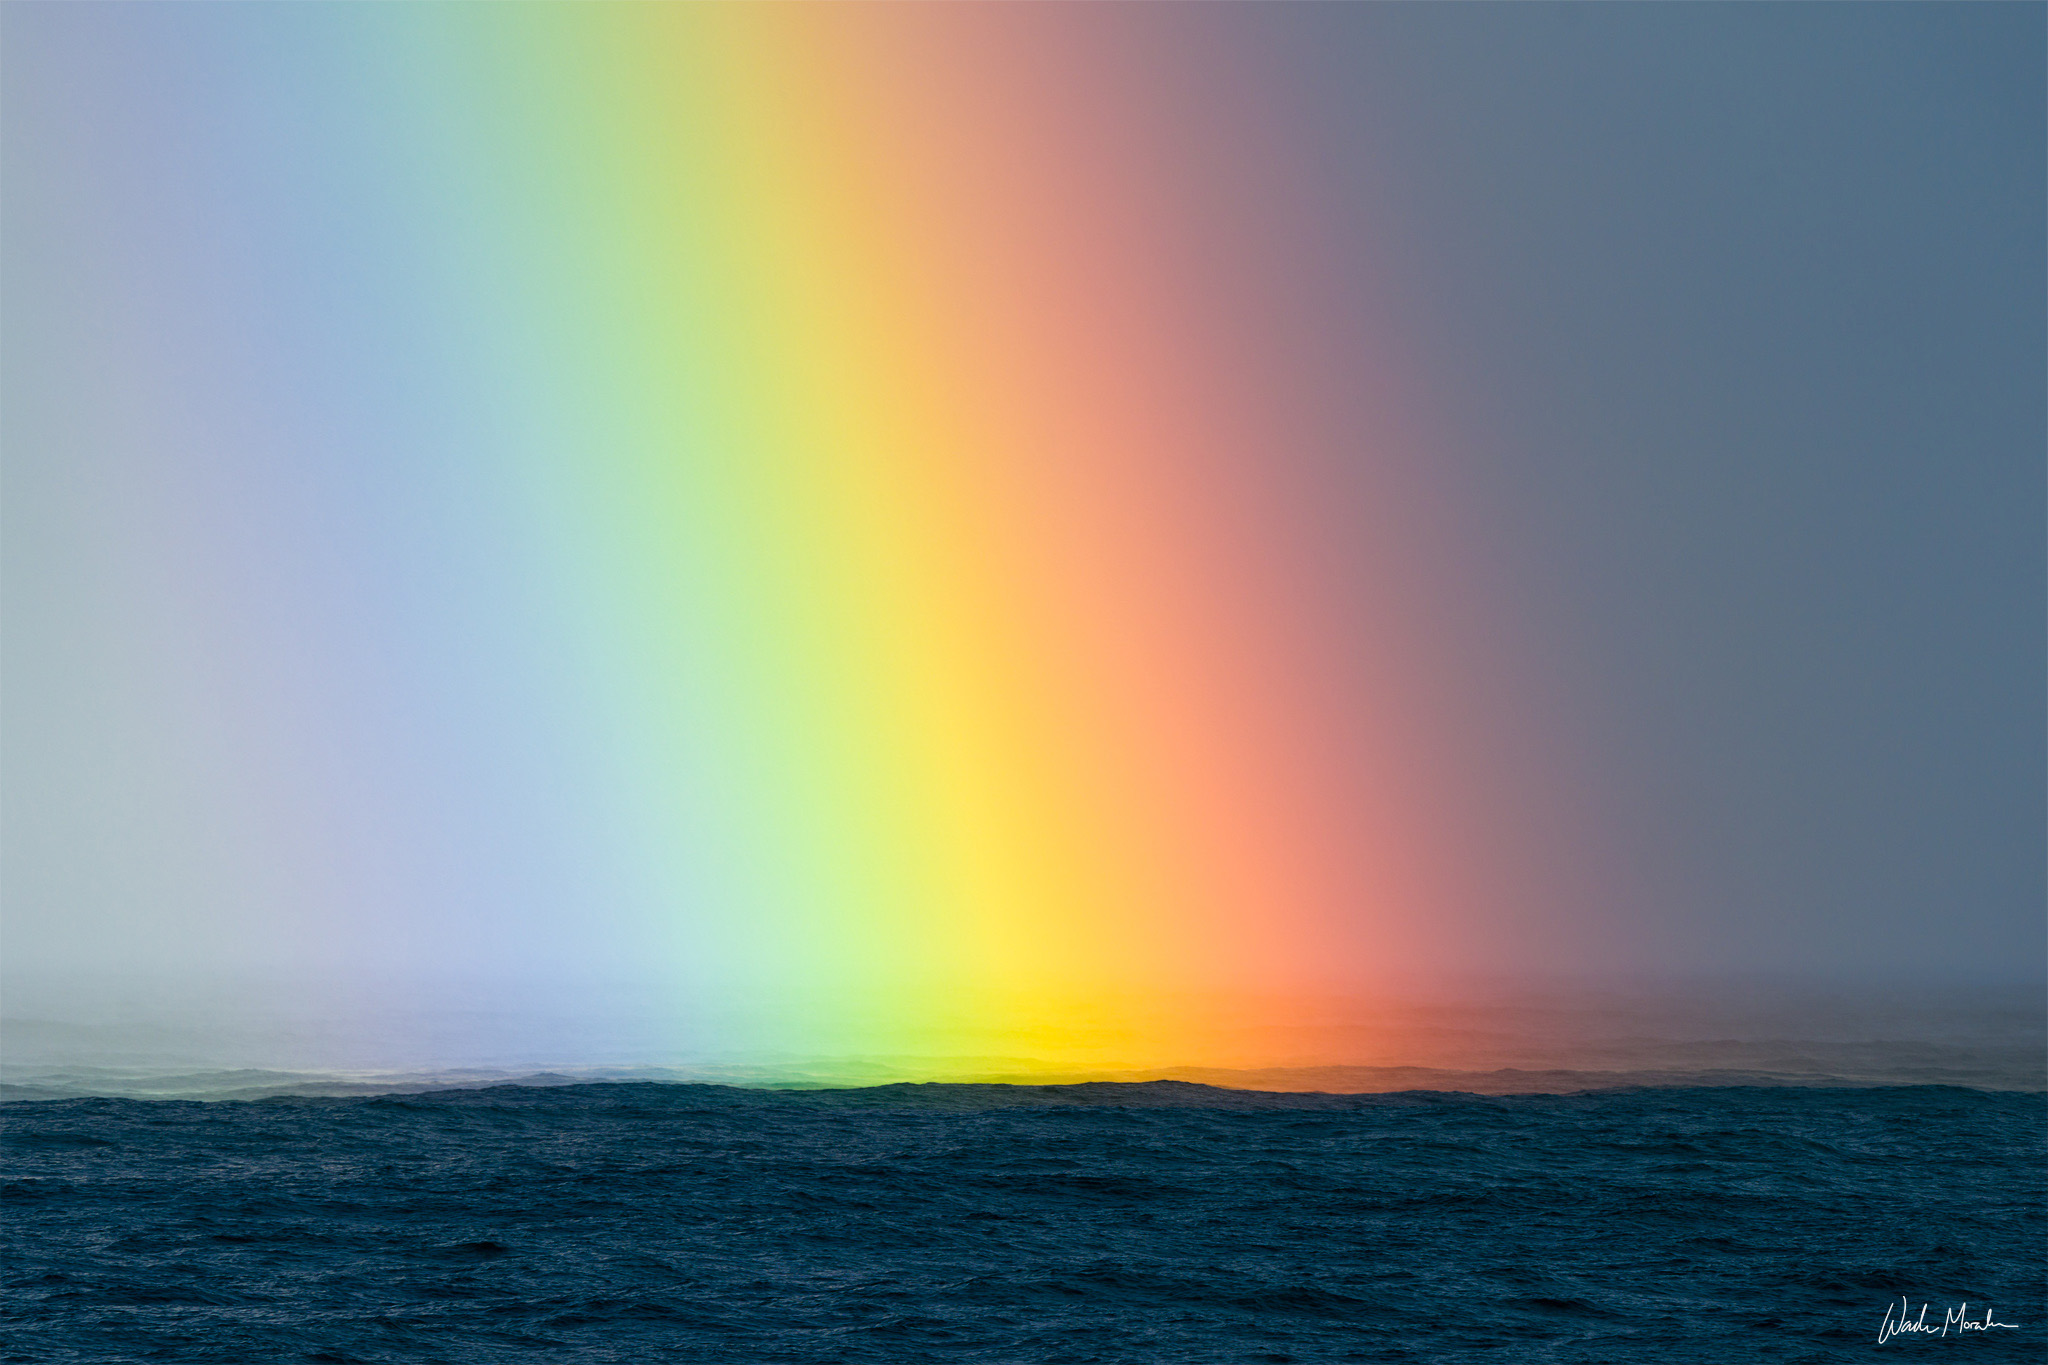 Not far off the coast of Onomea Bay on the Big Island of Hawaii, I took a photo of one of the most vibrant rainbows I have ever...